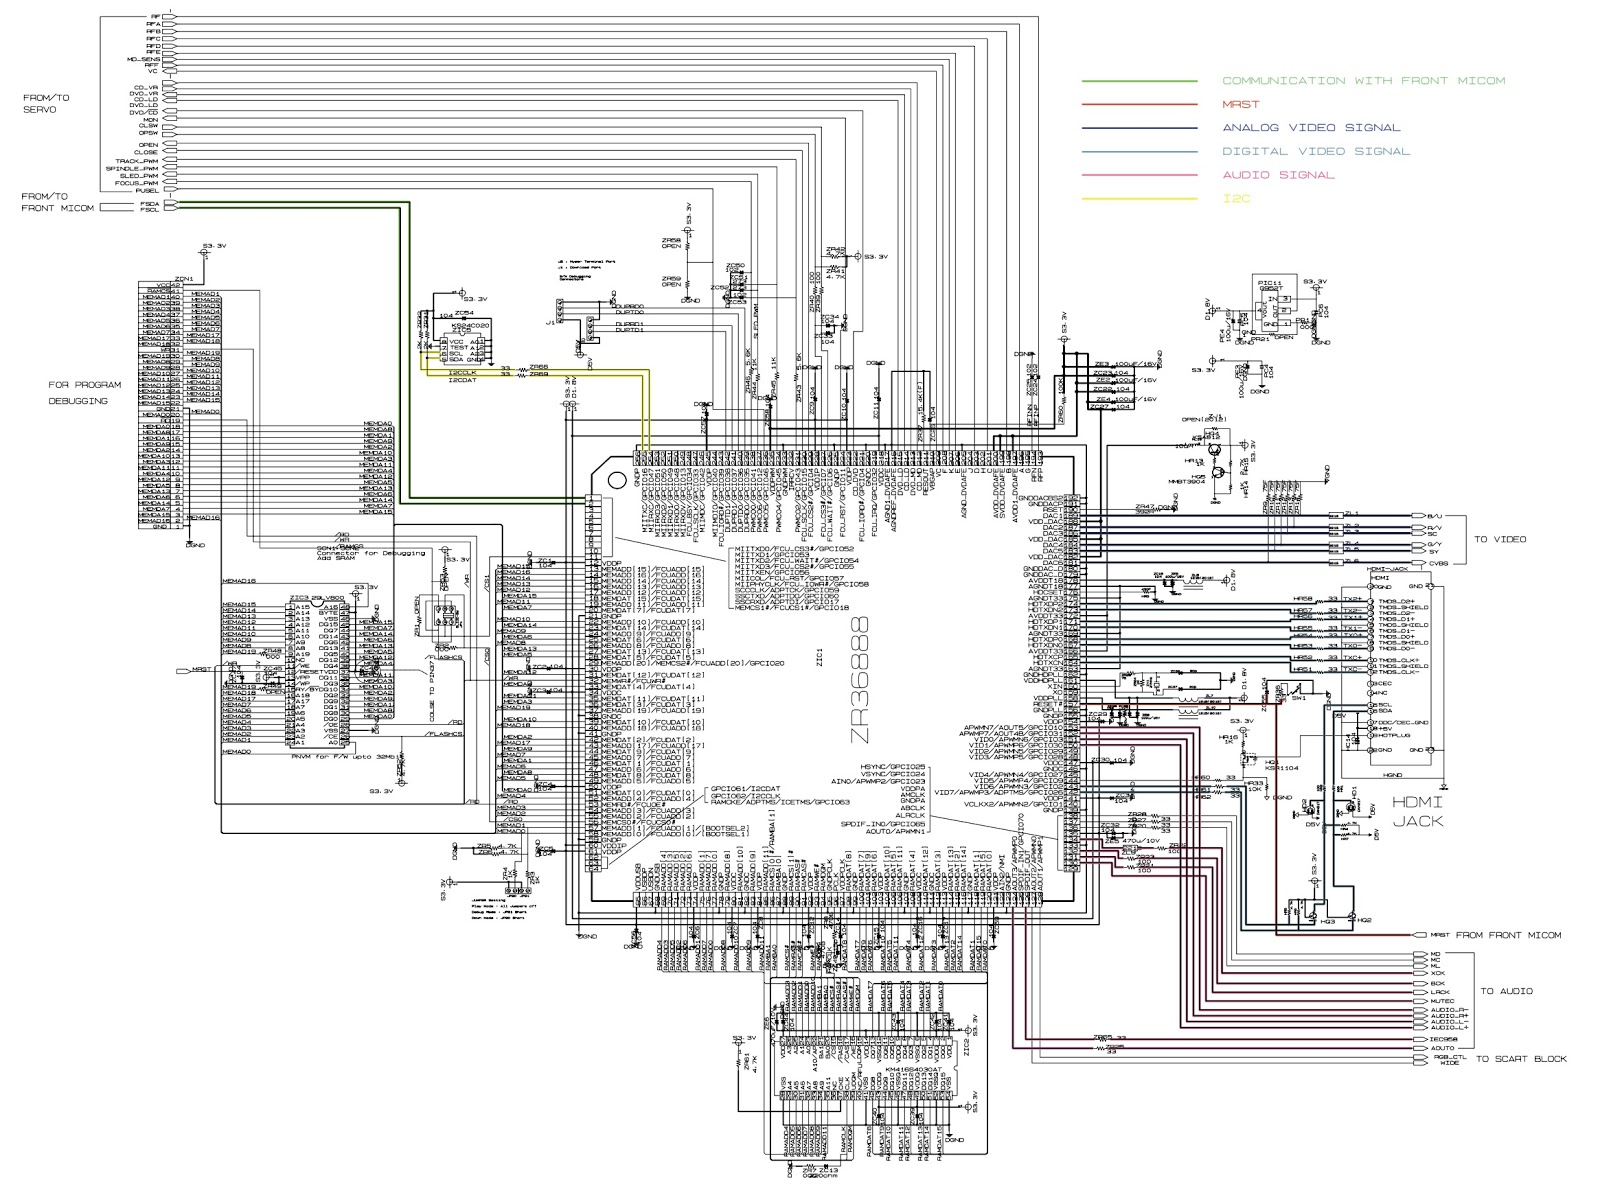 Modern Astec Power Supply Schematics Motif - Everything You Need to ...